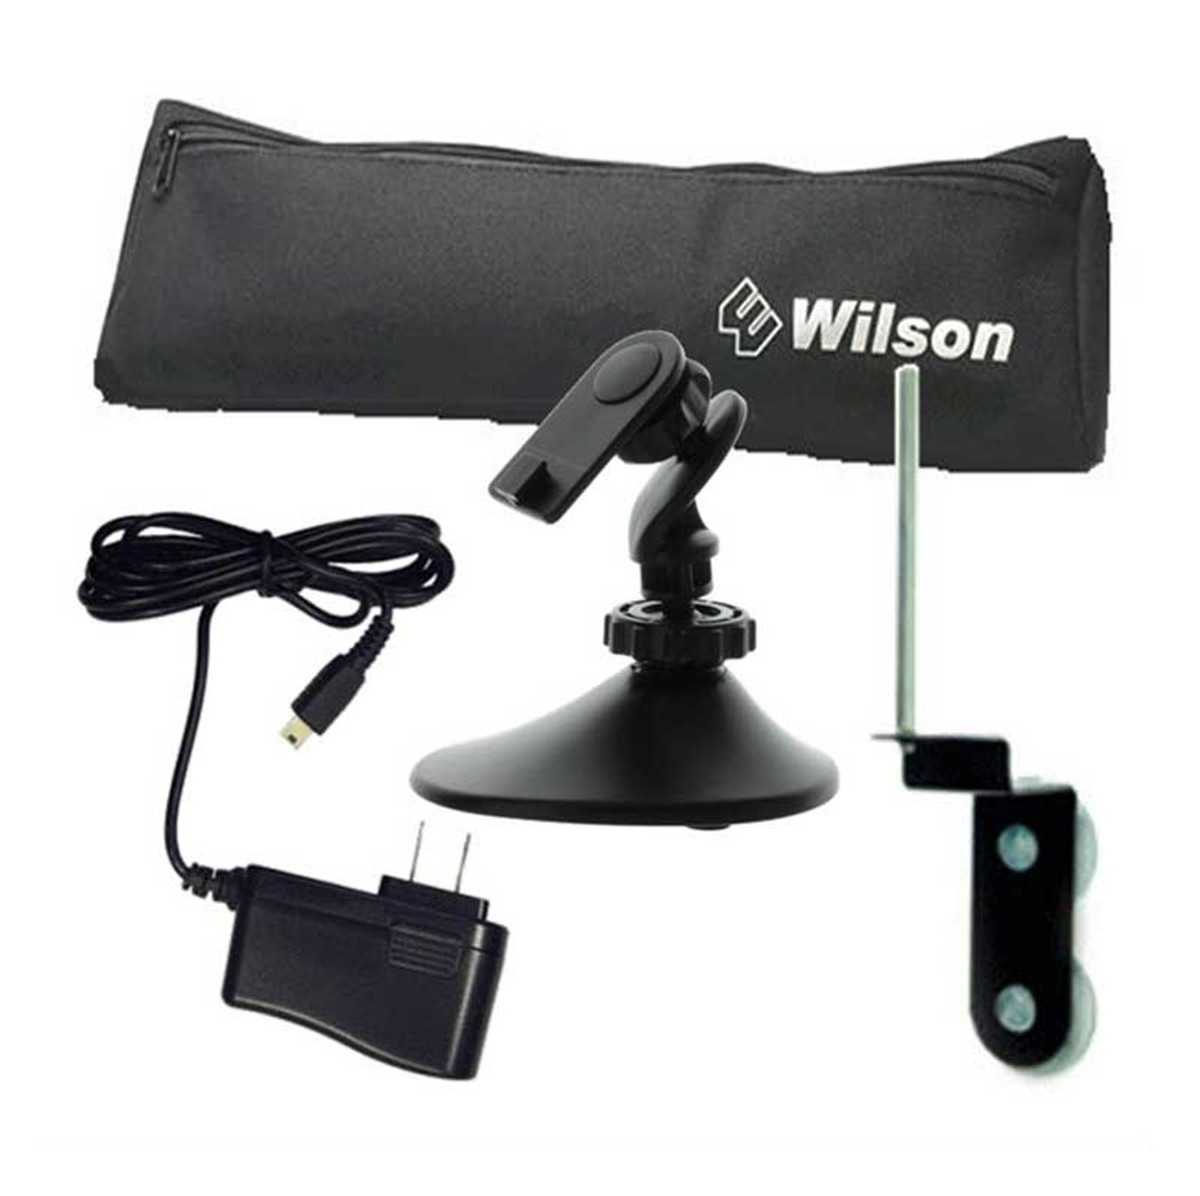 Wilson 859970 Home & Office Accessory Kit for use with Sleek amplifiers, main image